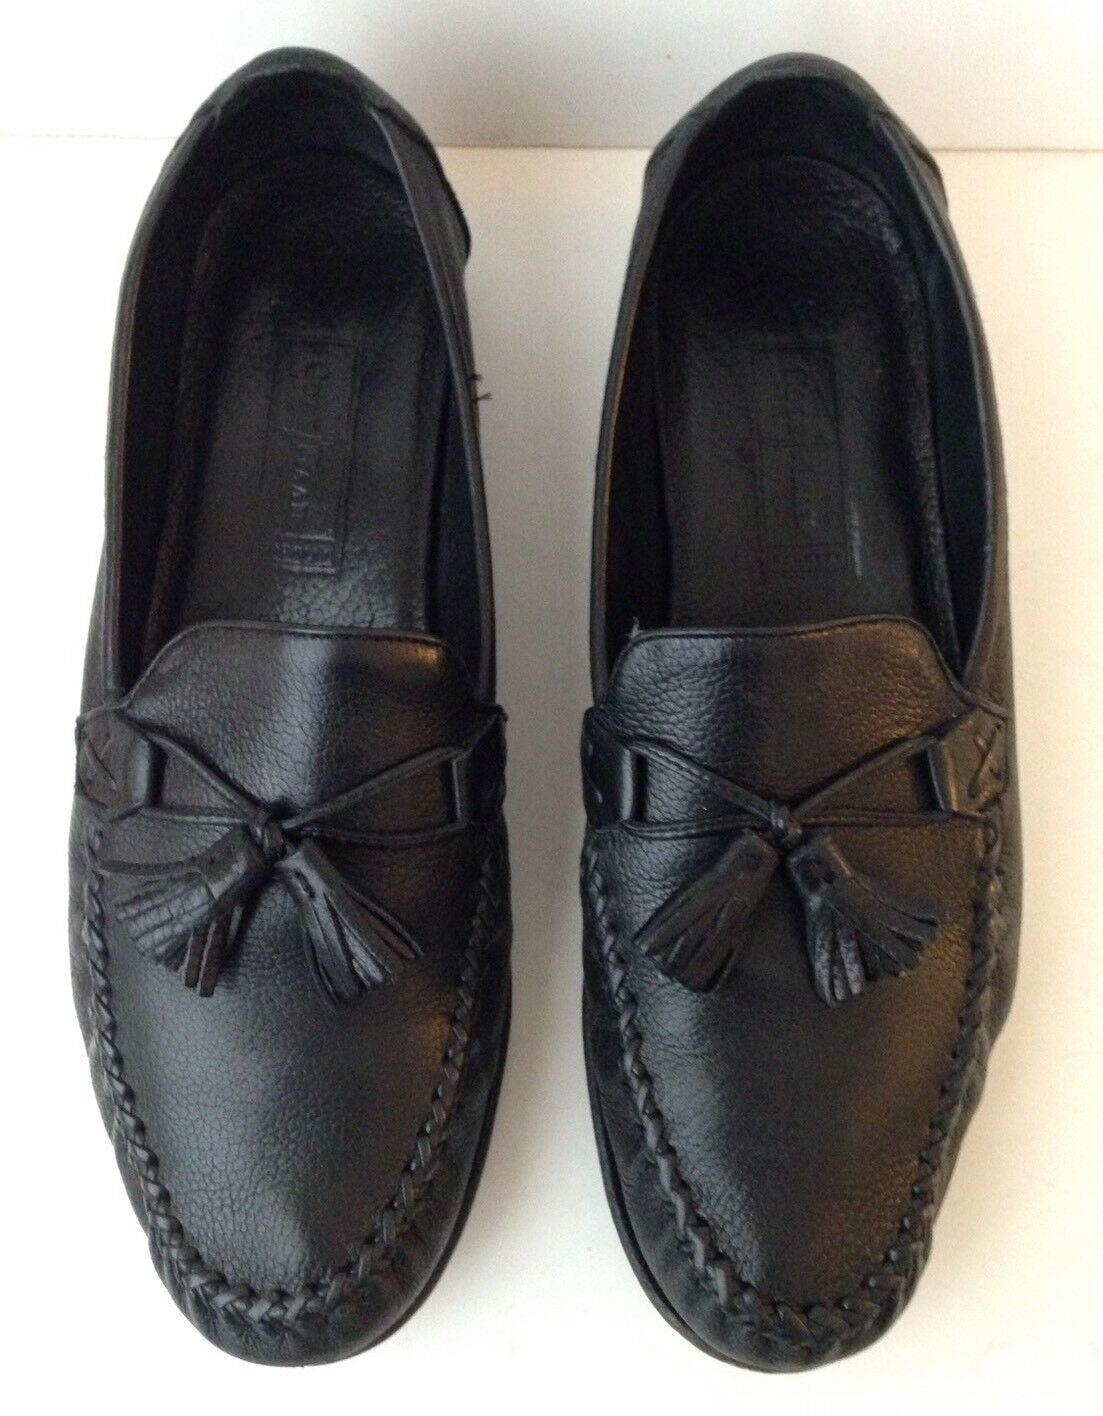 Cole Haan Tassel Soft Black Textured Leather Tassel Haan Loafers Men's Shoes Size 11 B 29c565